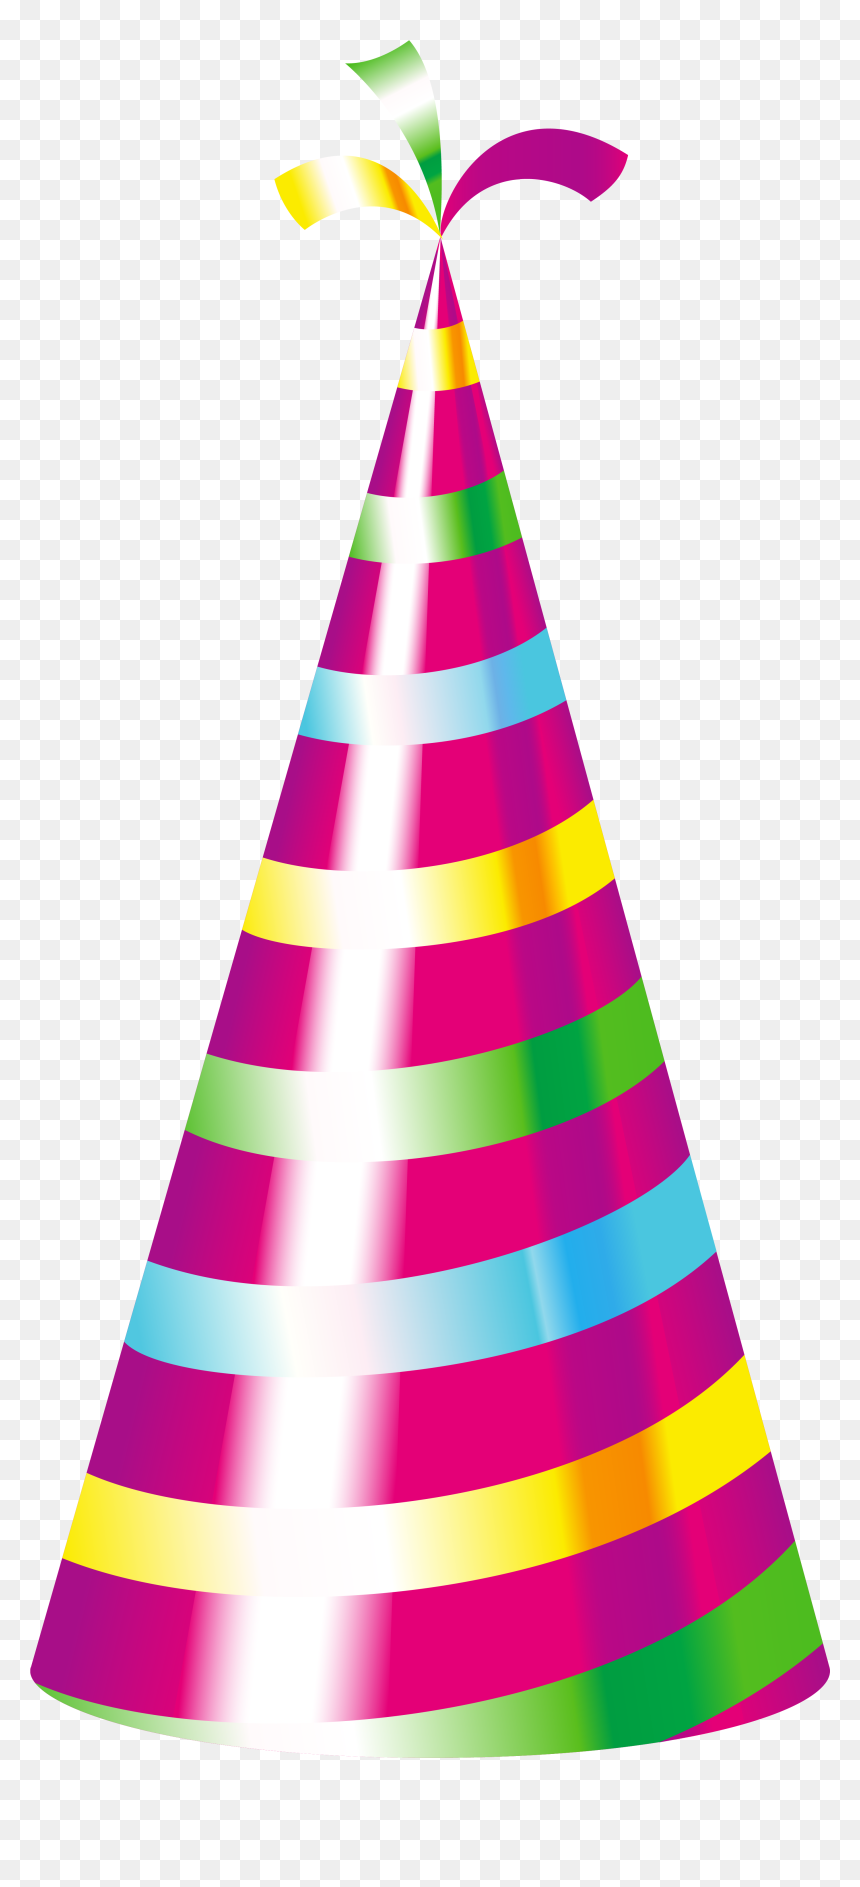 Birthday Hat Clipart Png, Transparent Png